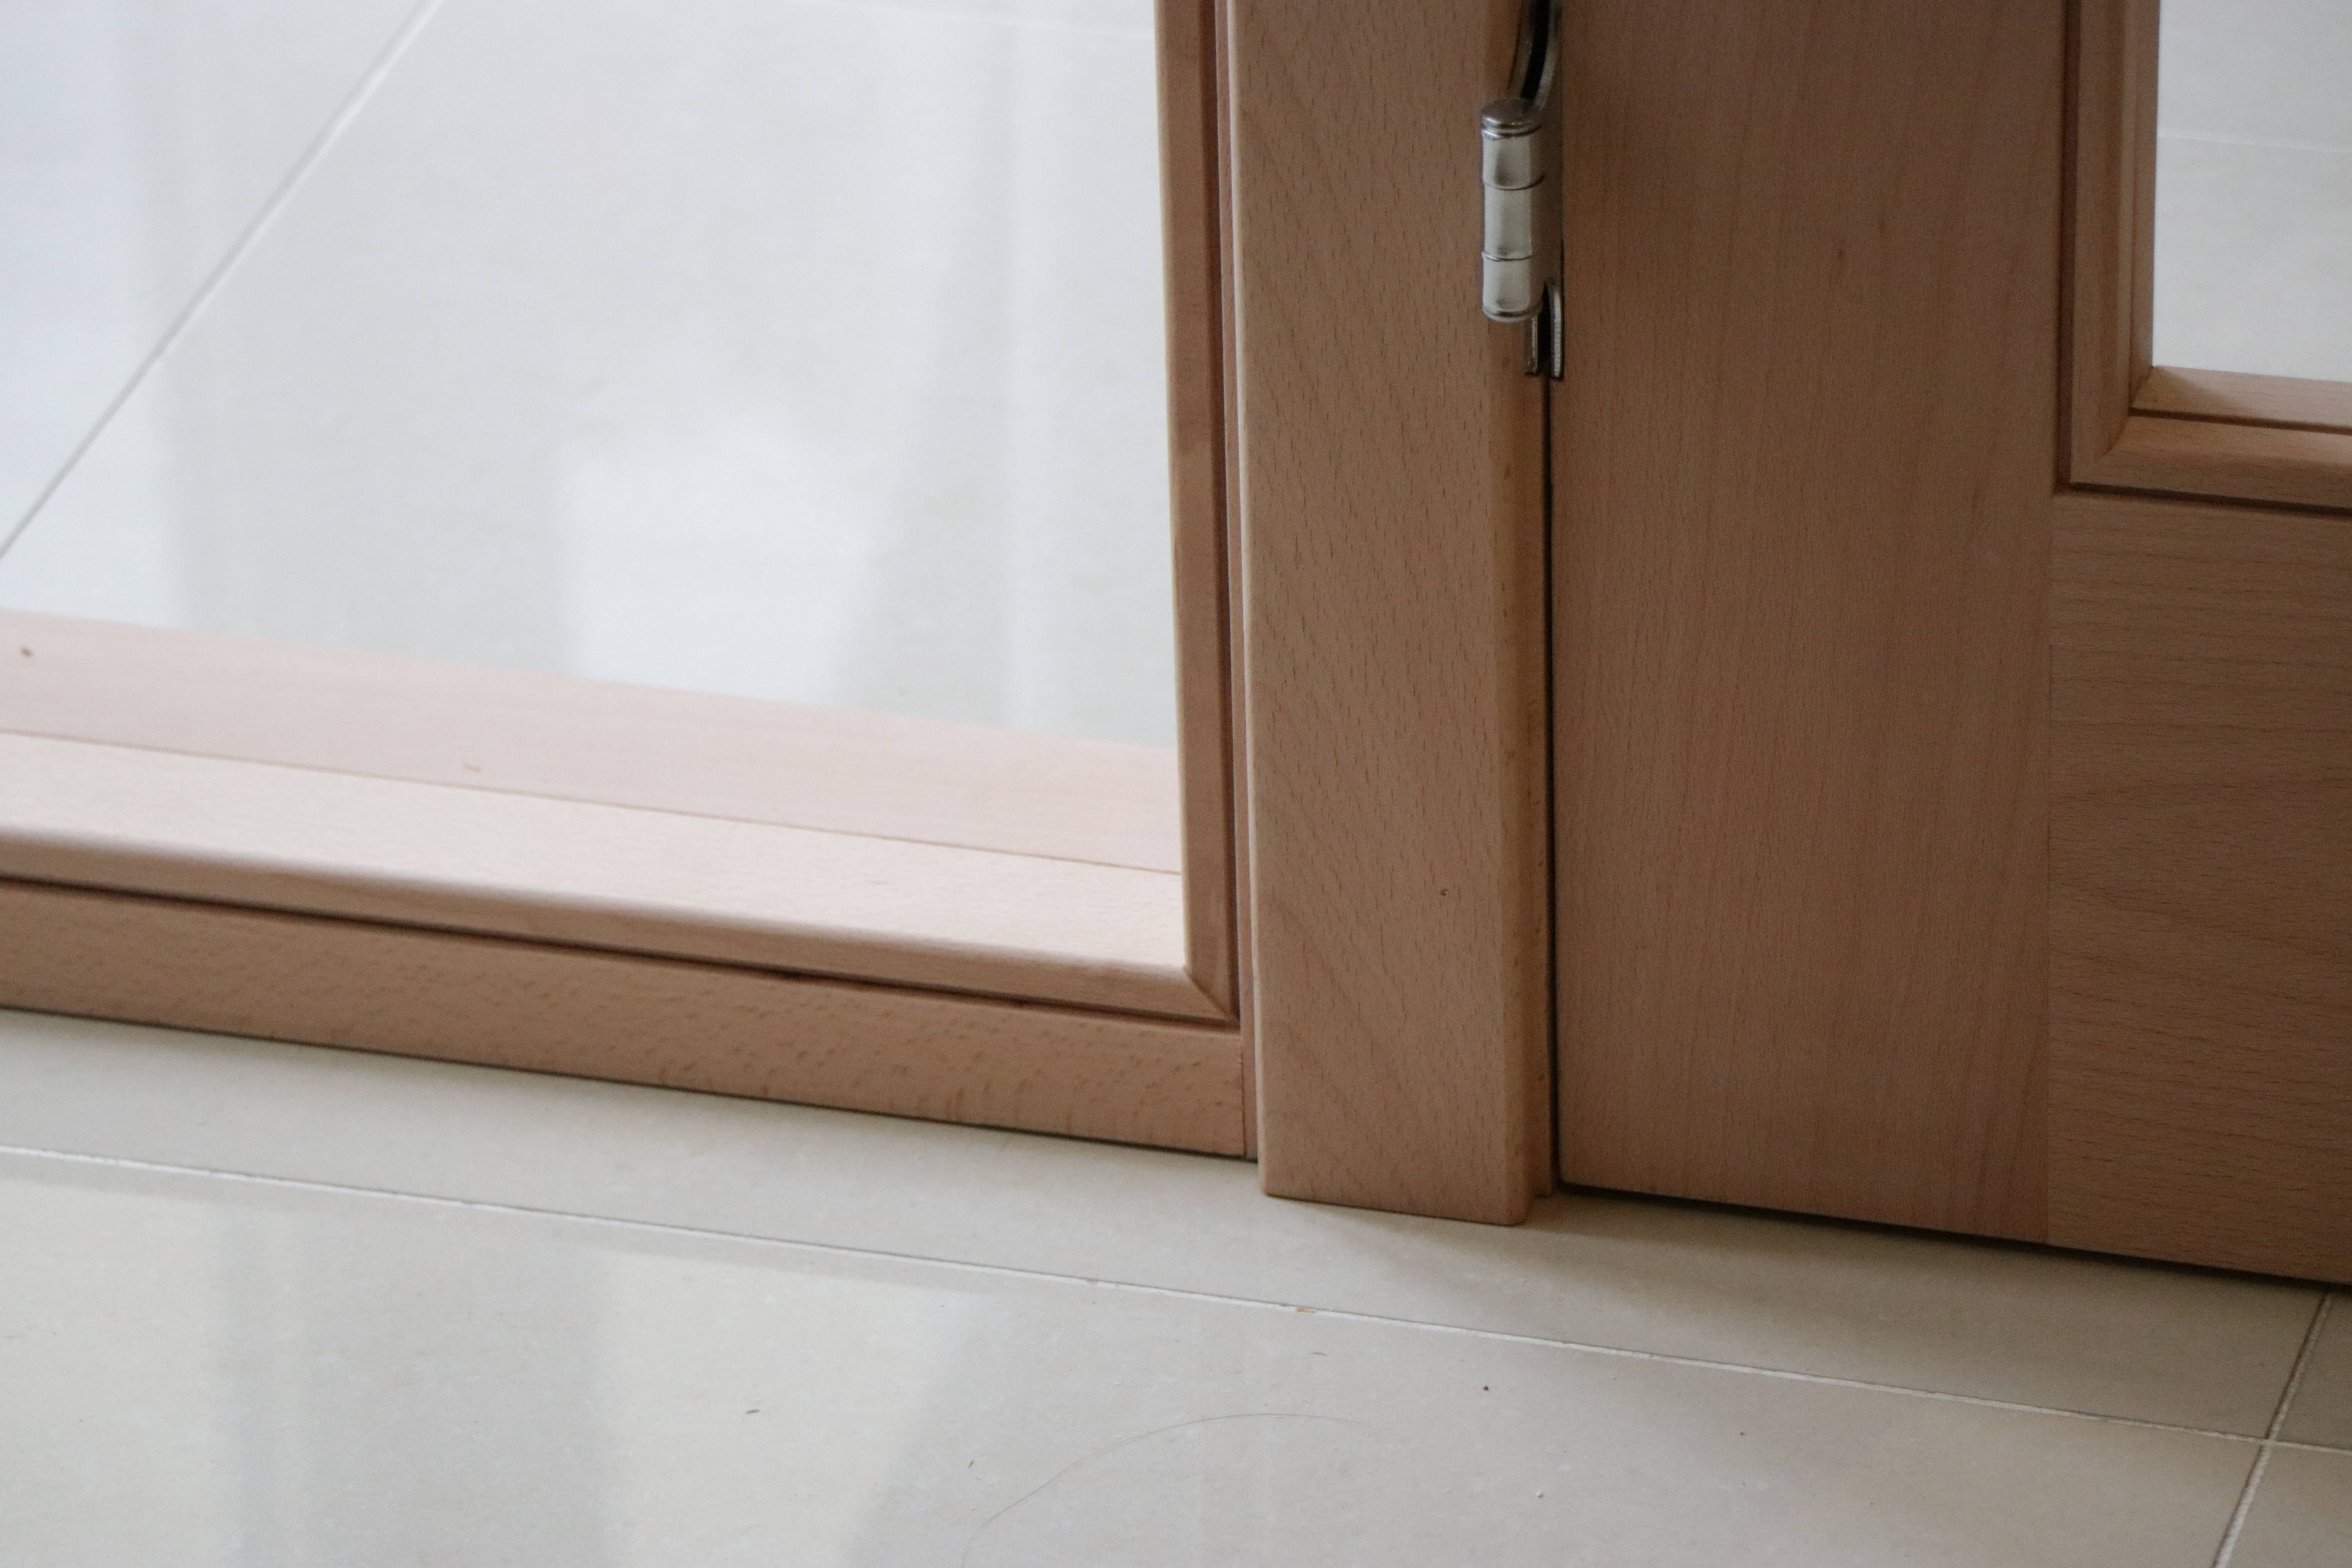 Interior wooded doors and glass panels